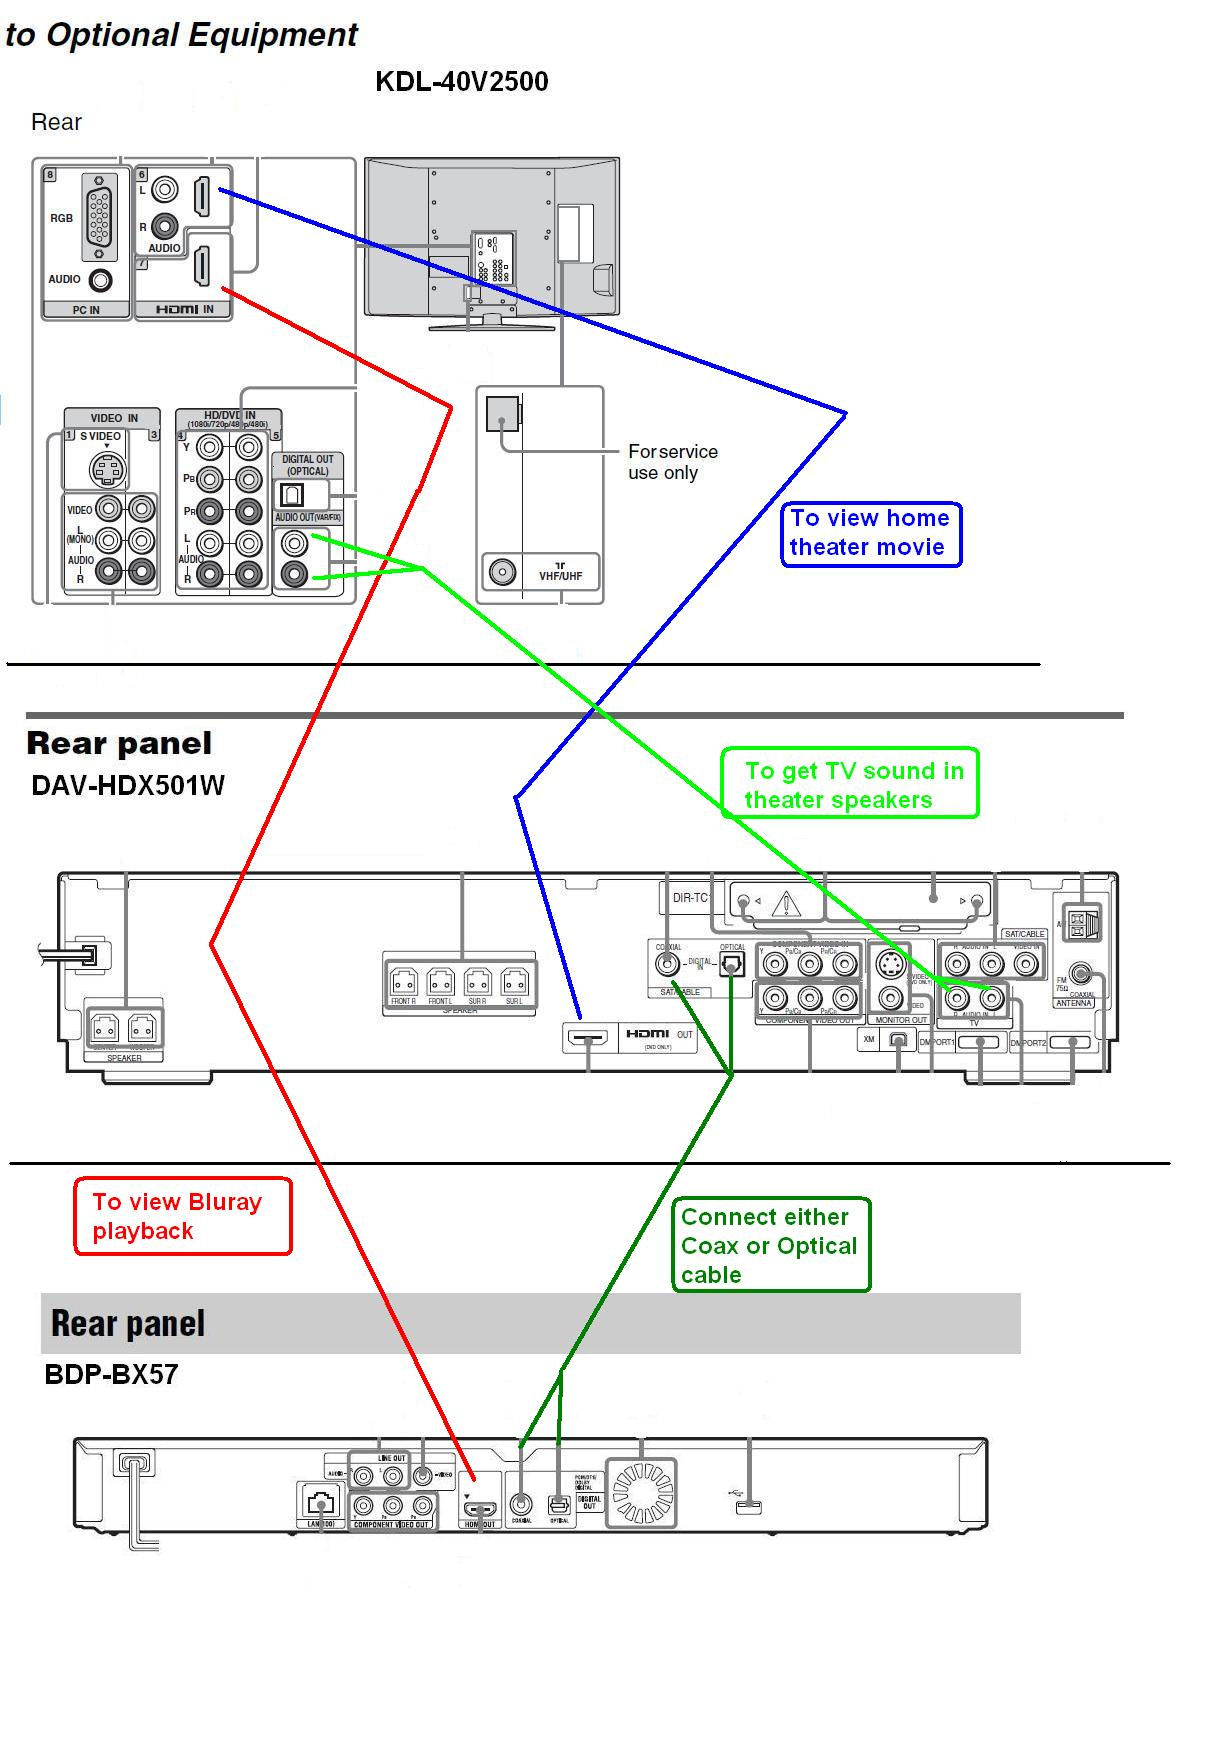 Sony Tv Wiring Diagram Repair Image Ge Oven Jgb915 I Have A Bravia Home Theater System And Just Please Click Below Similiar Samsung Circuit Keywords